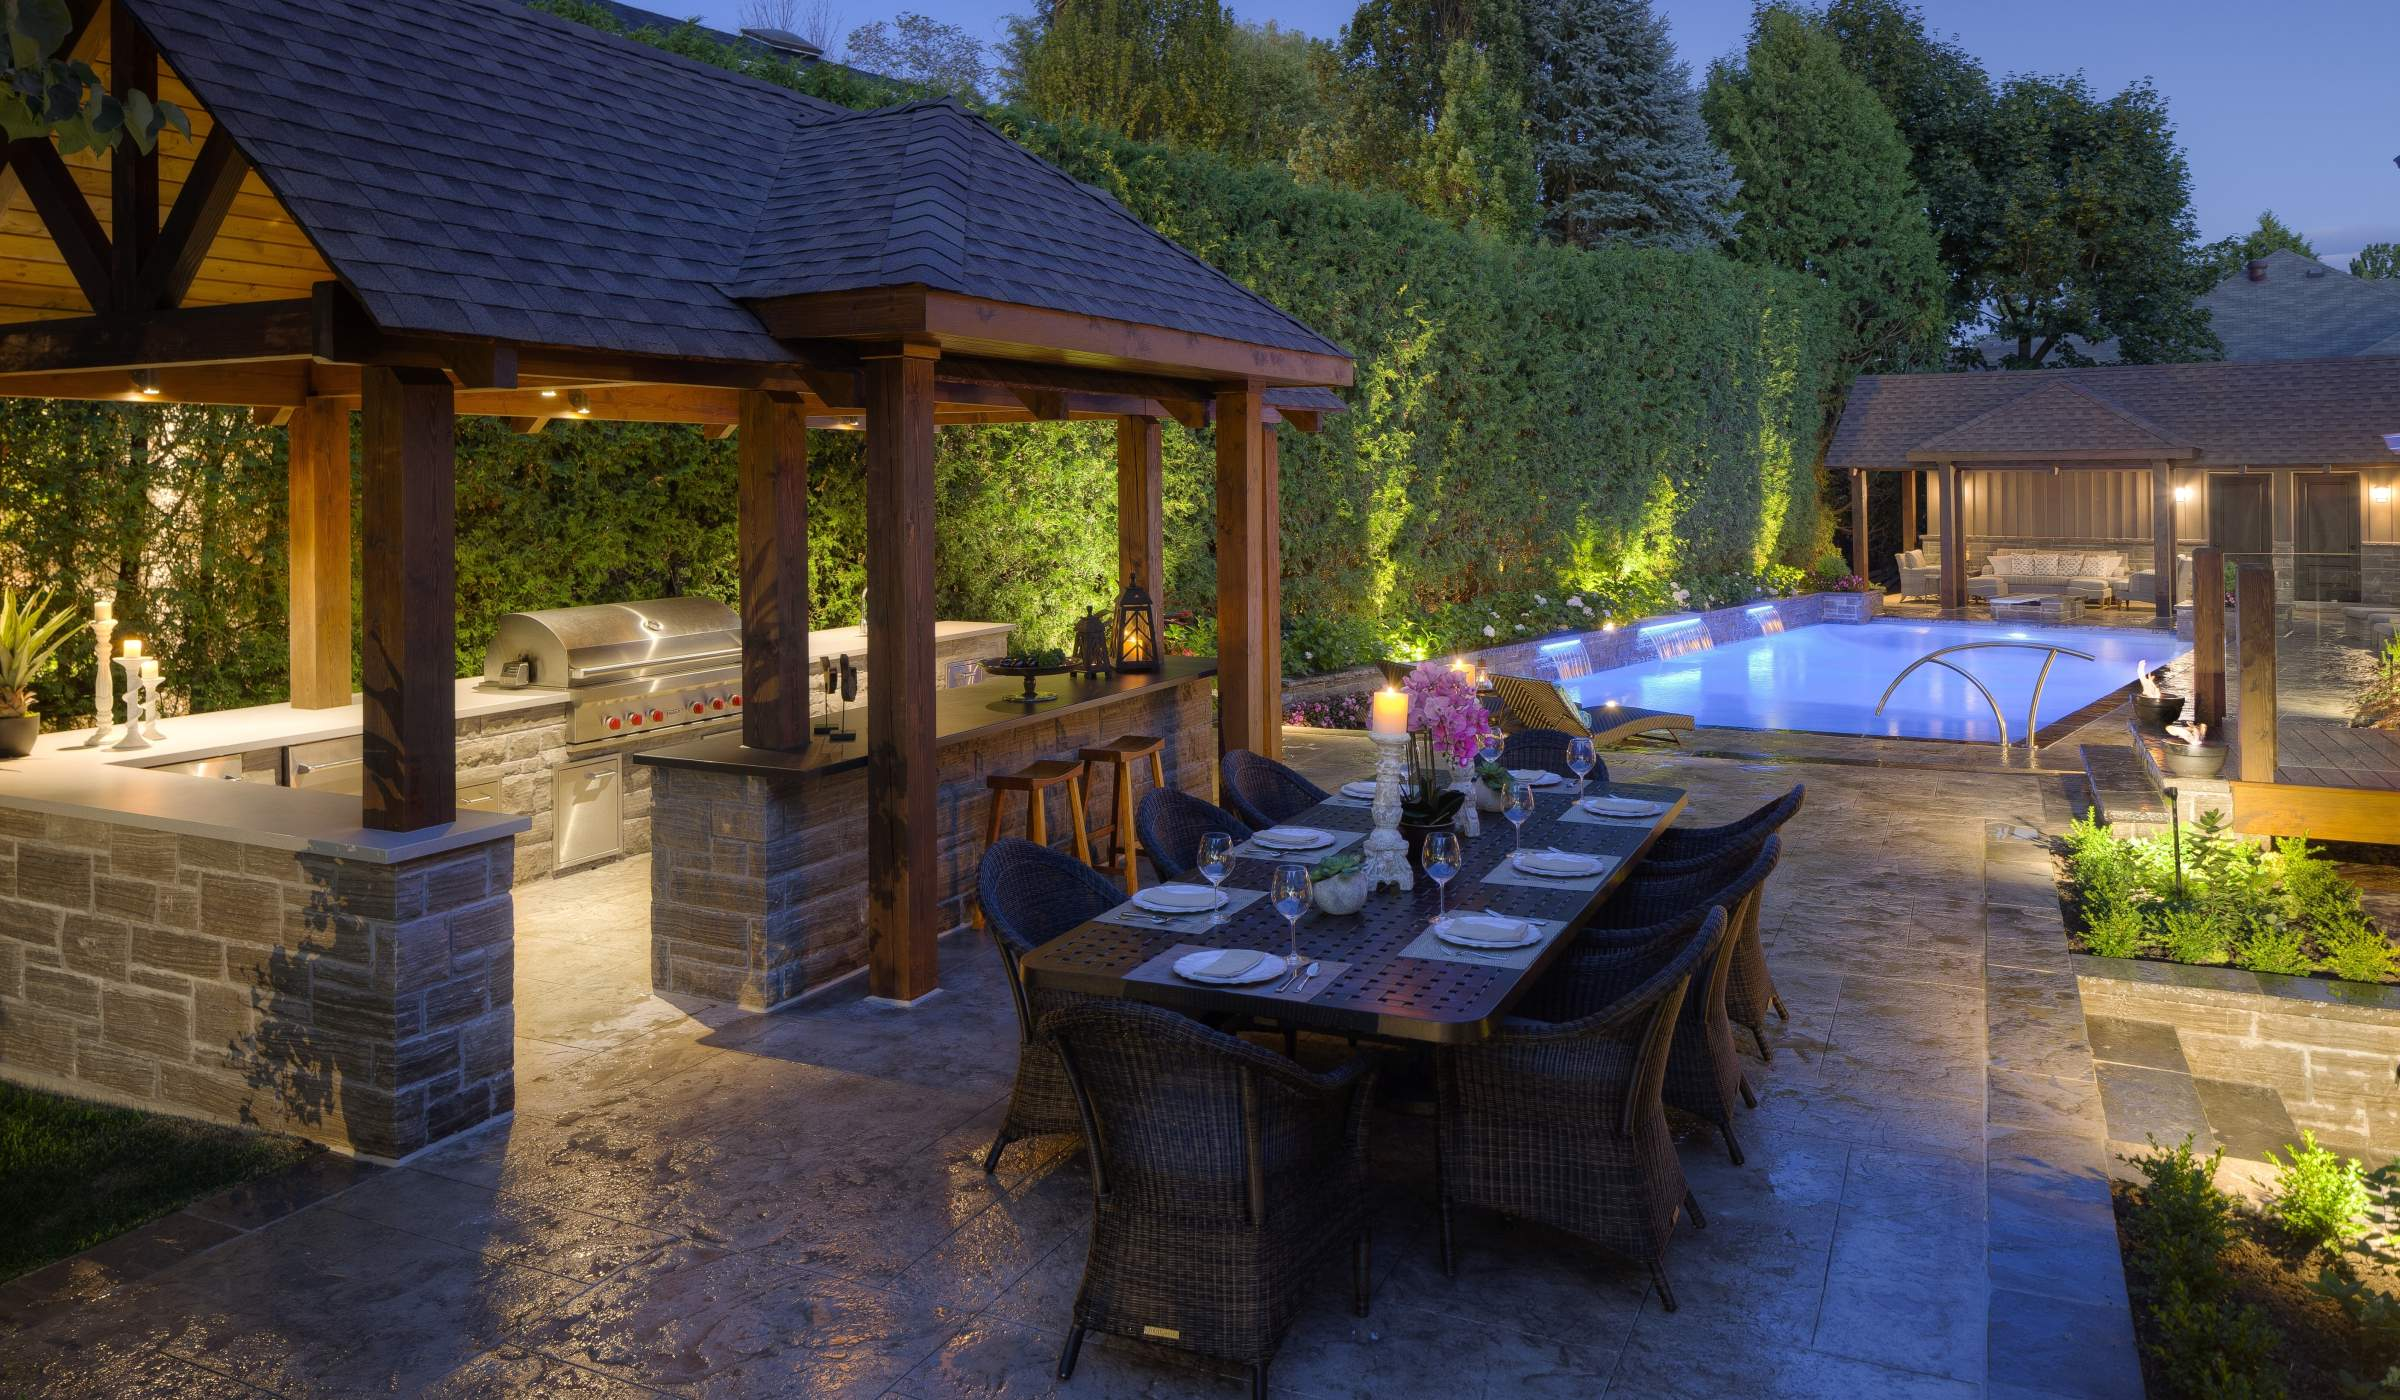 Turnkey Backyards